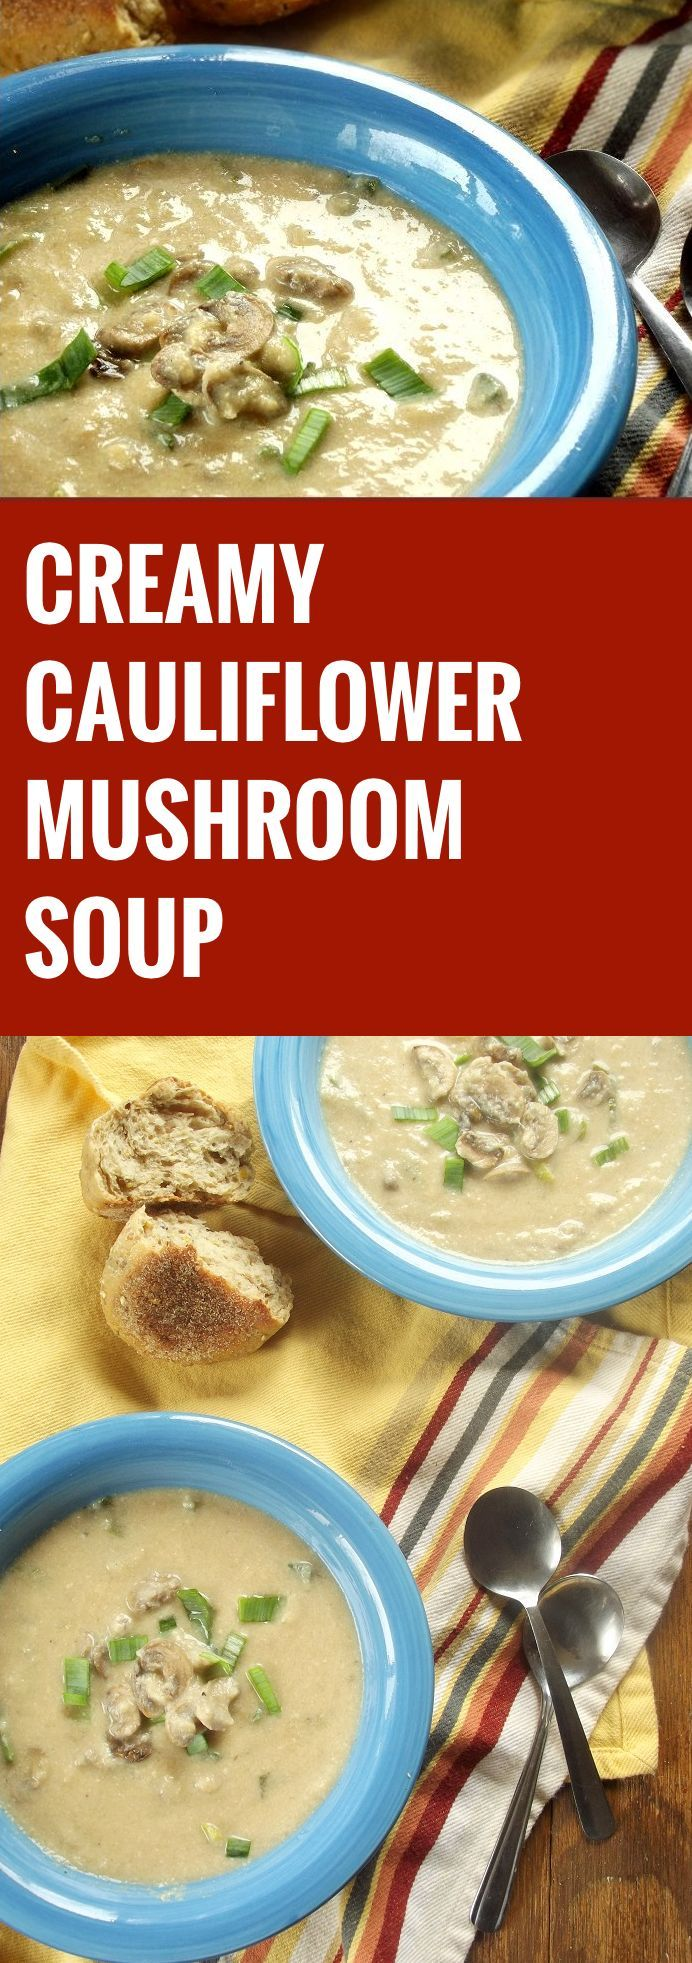 This cauliflower mushroom soup is made with a rich cauliflower base, seasoned with garlic, leeks and white wine, and loaded with tender sautéed mushrooms.